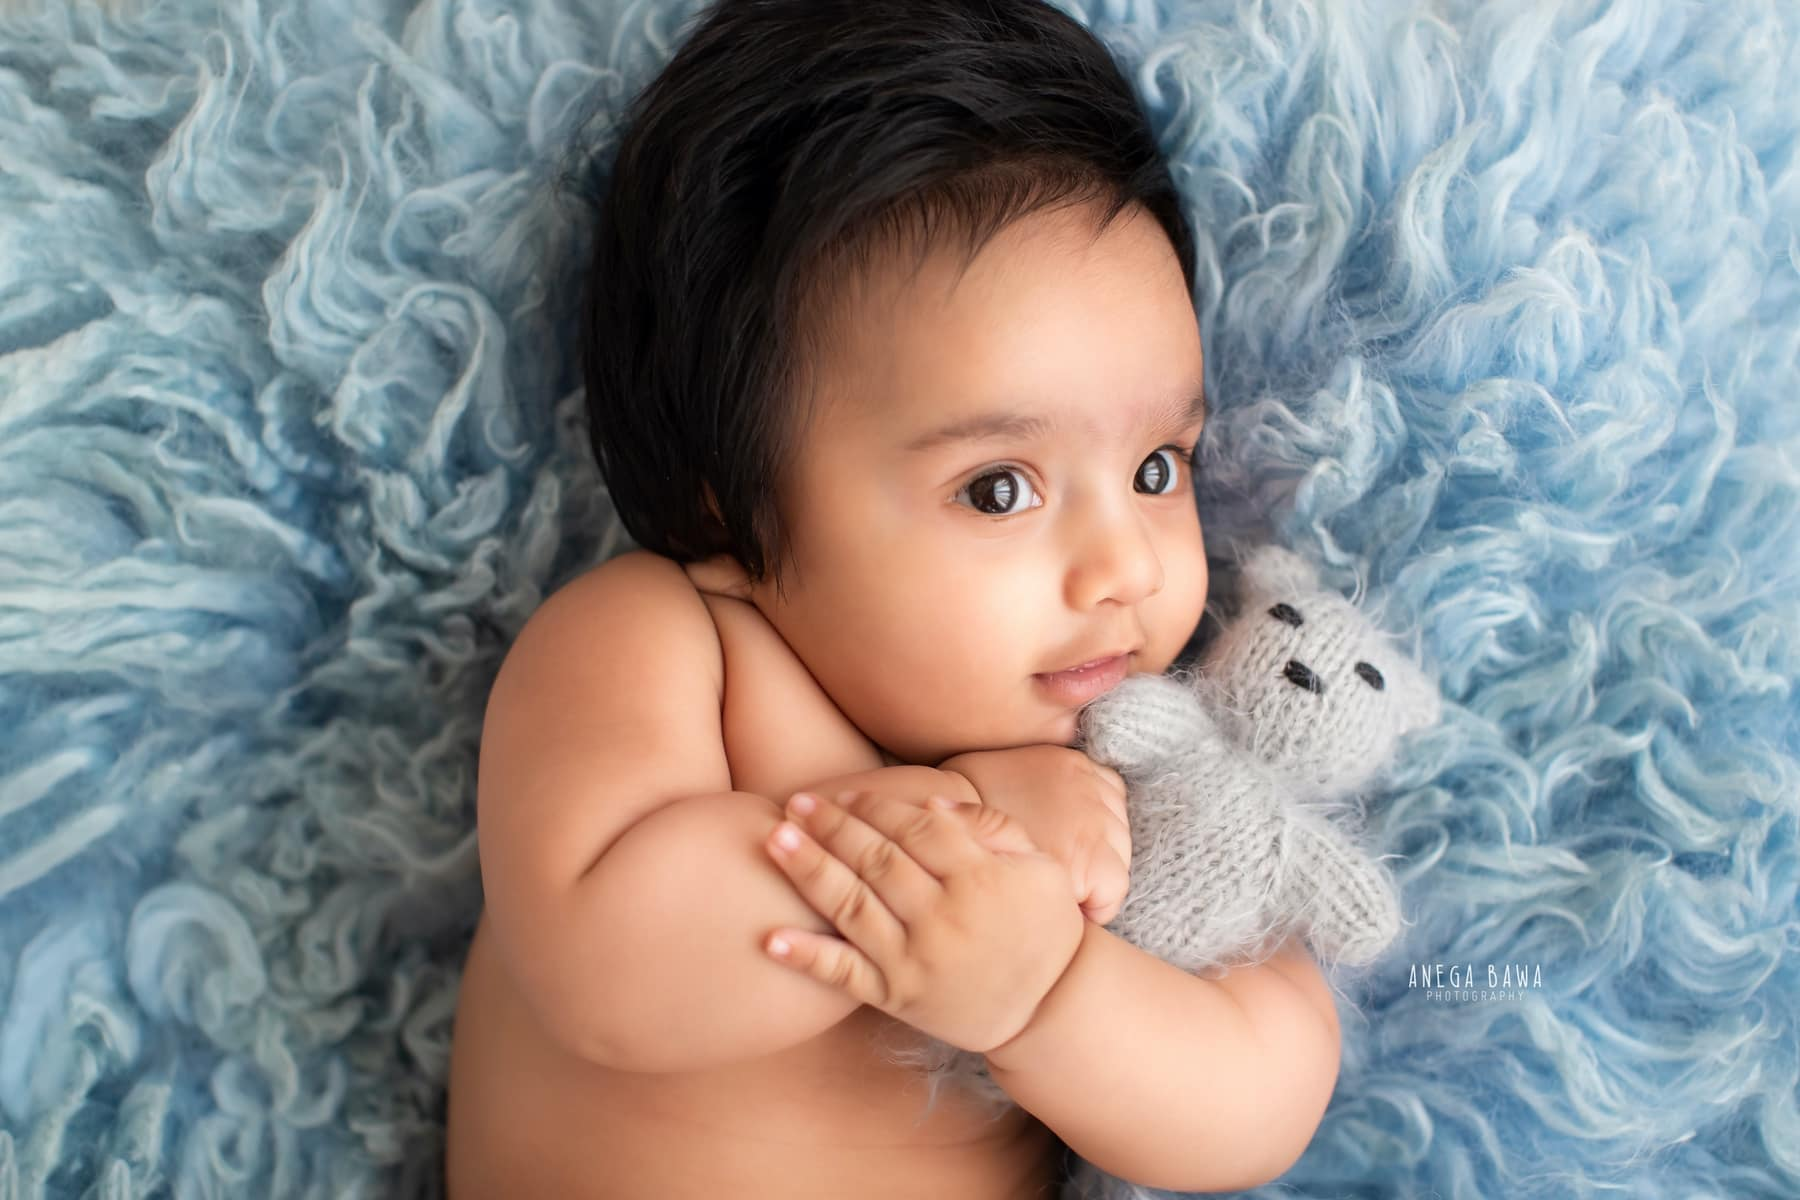 blue baby photography delhi 5 months baby boy photoshoot gurgaon anega bawa